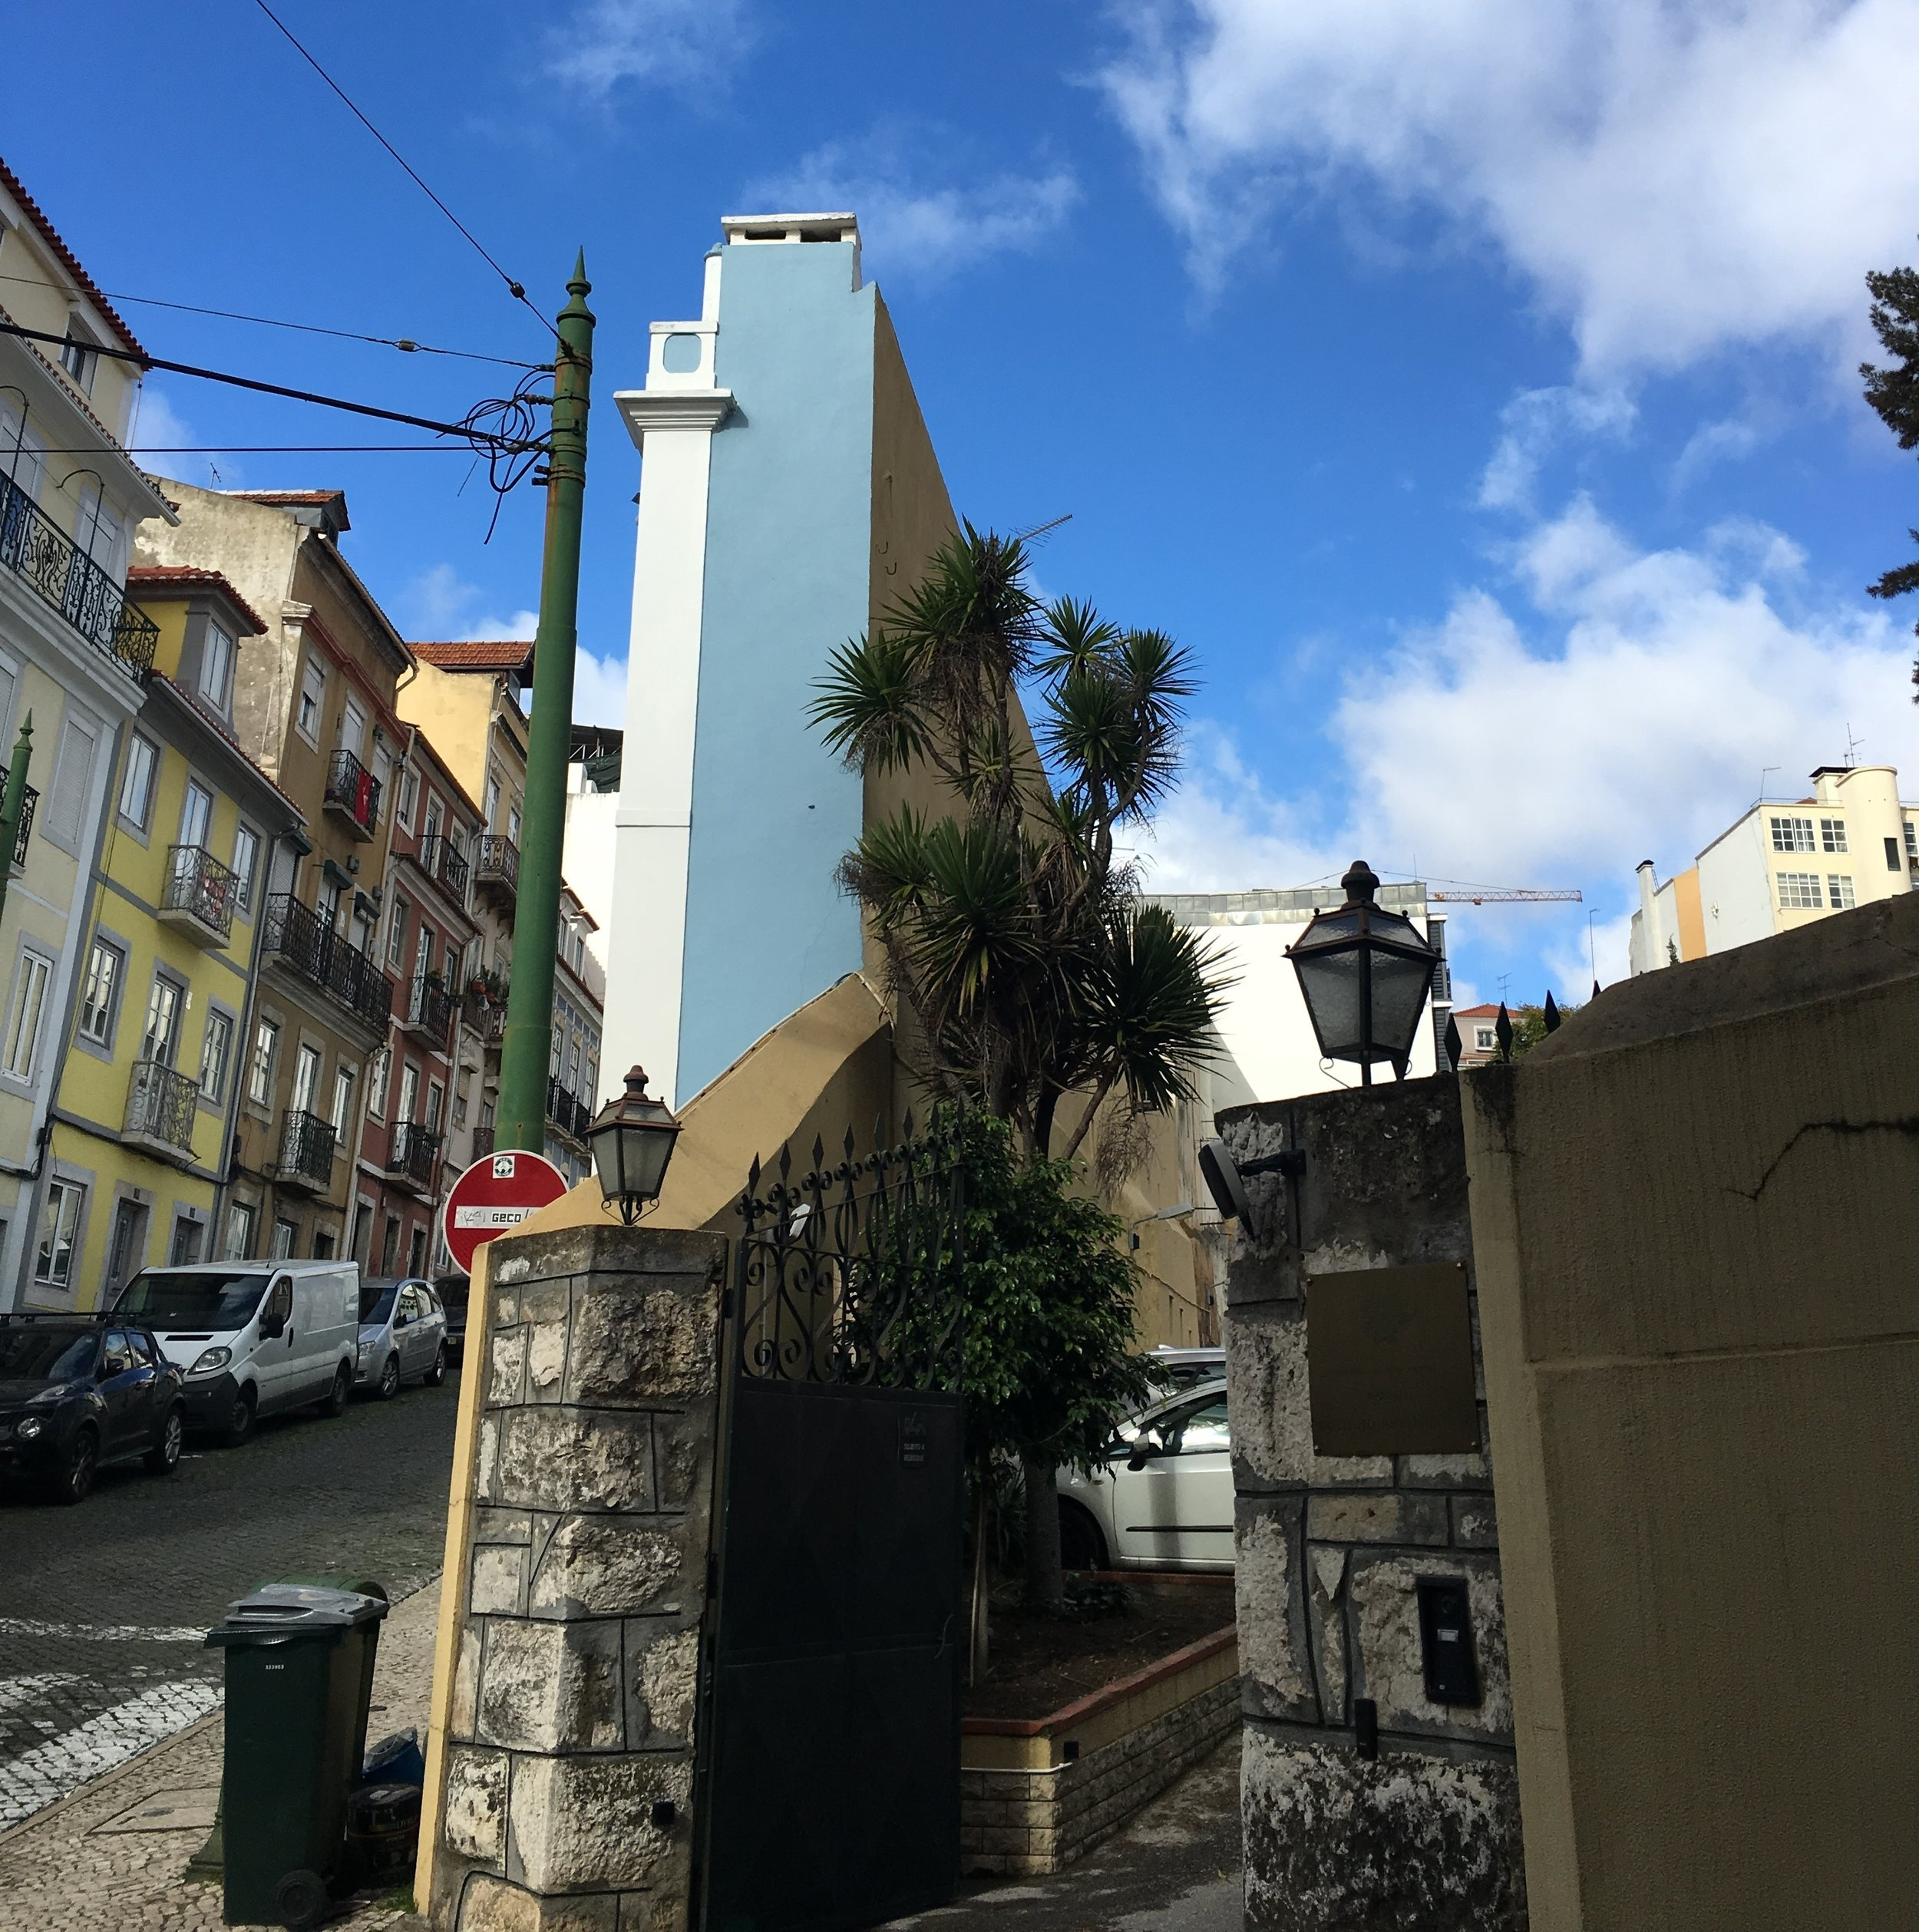 Lisbon's Narrowest Building: looks like just the facade!